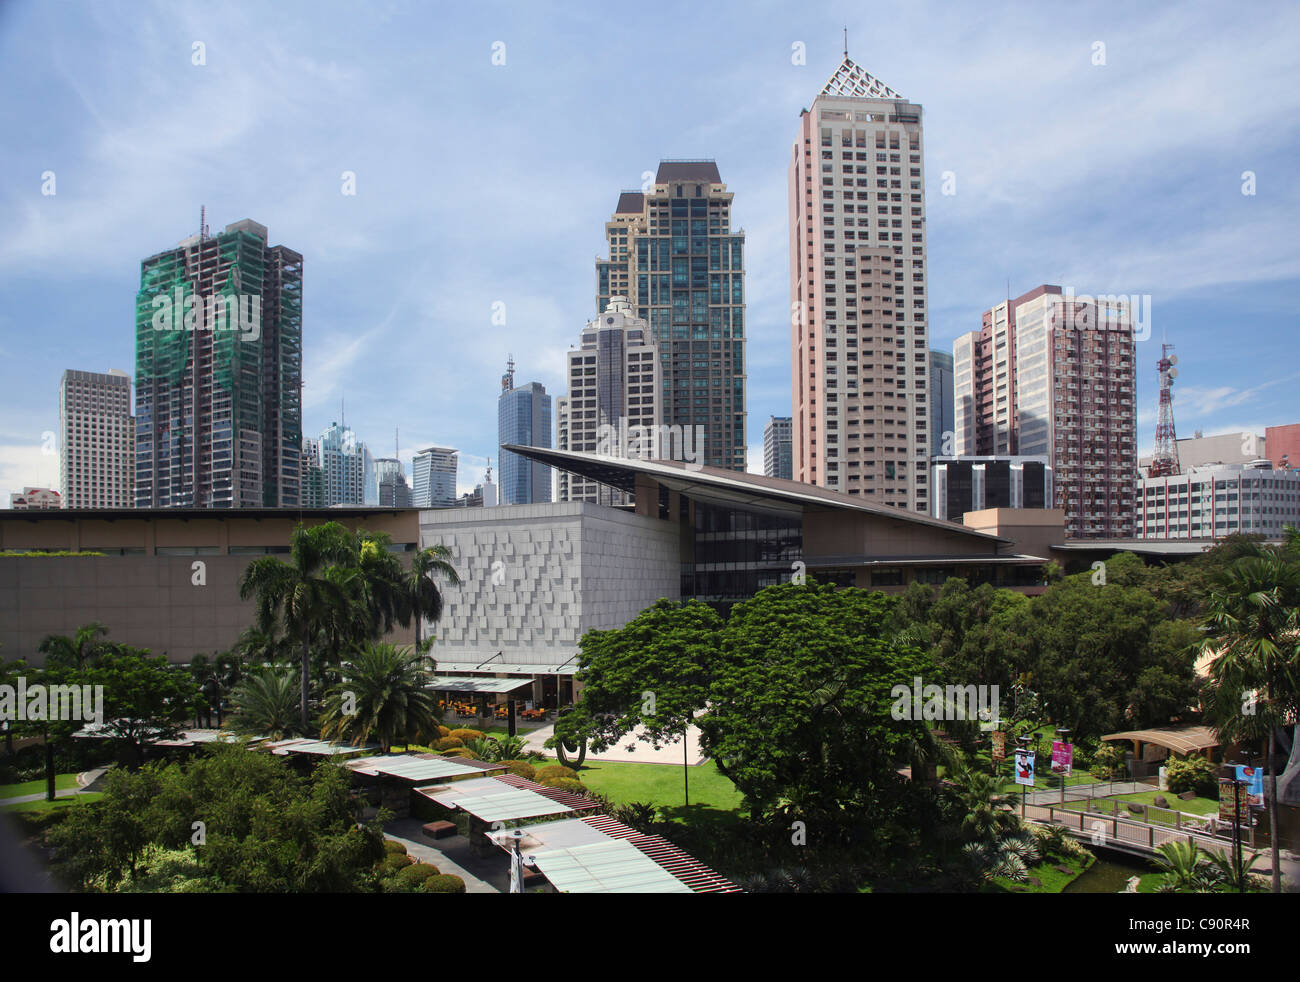 Greenbelt 5 shopping mall in Greenbelt Park in Makati City, Makati City, Manila, Luzon, Philippines, Asia - Stock Image